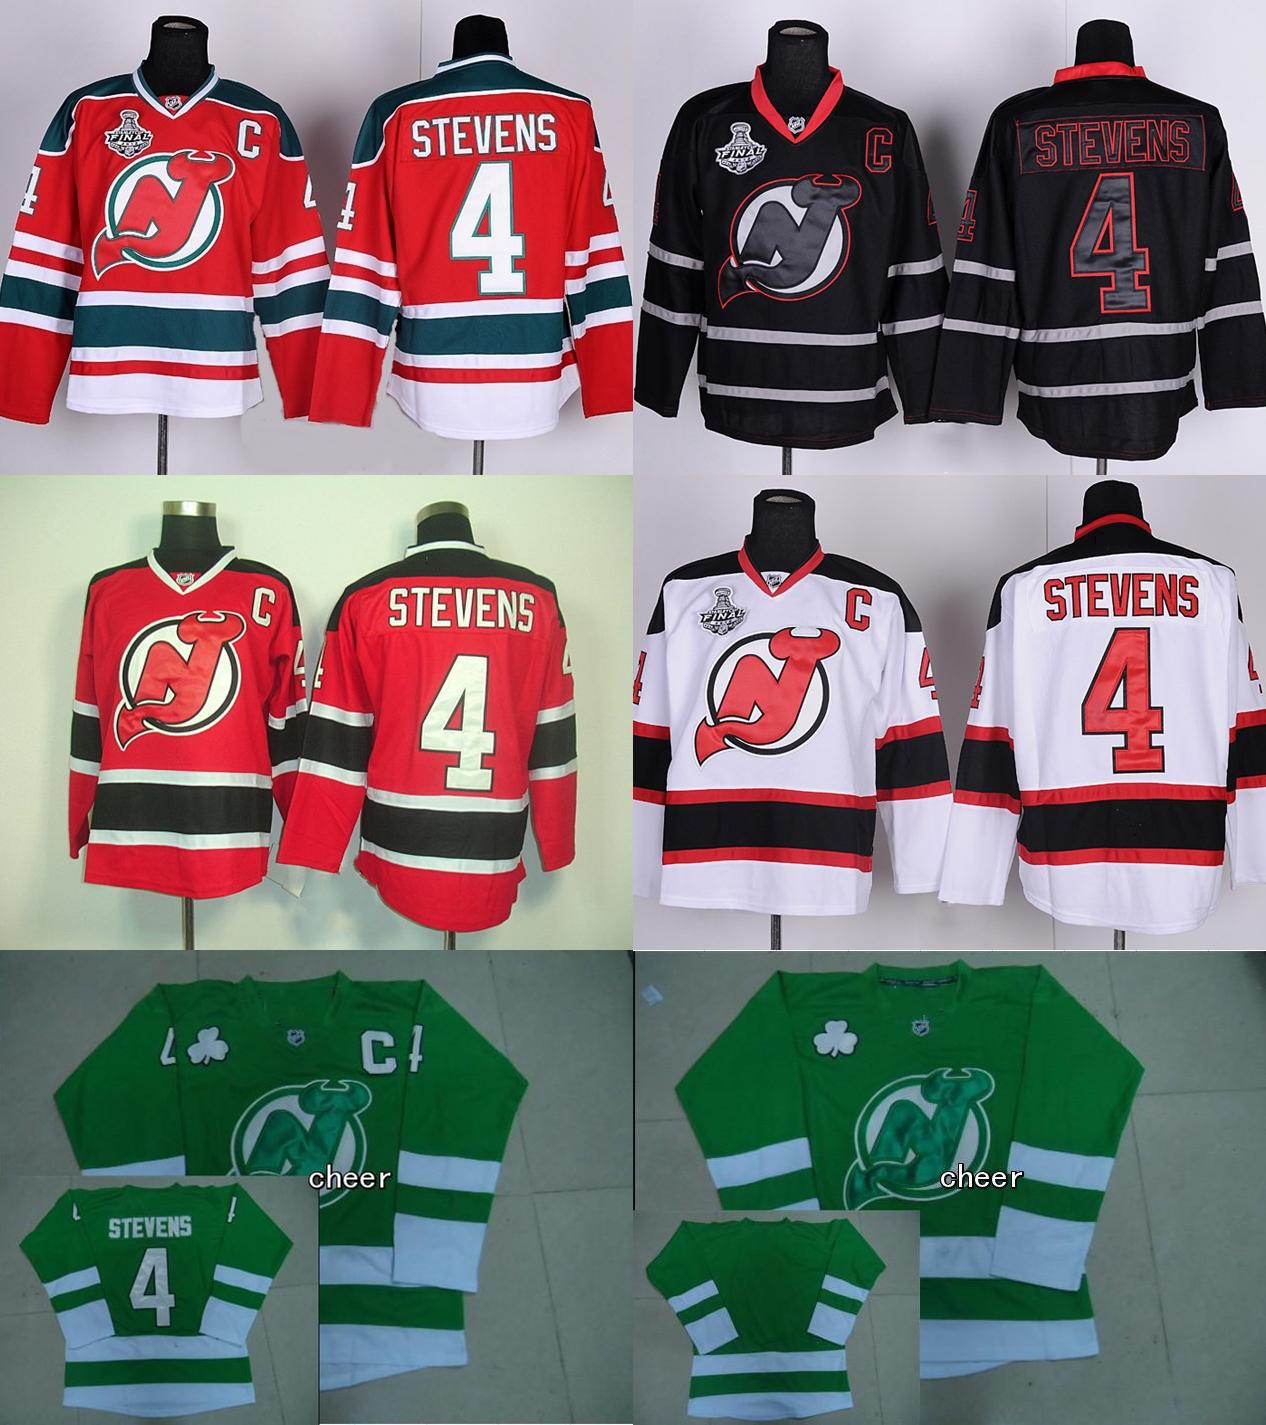 reputable site 06bac 5e539 2016 Mens New Jersey Devils #4 Scott Stevens White Red Black Green Blank  Hockey Jersey Good quality free sihipping cheap wholesale prices